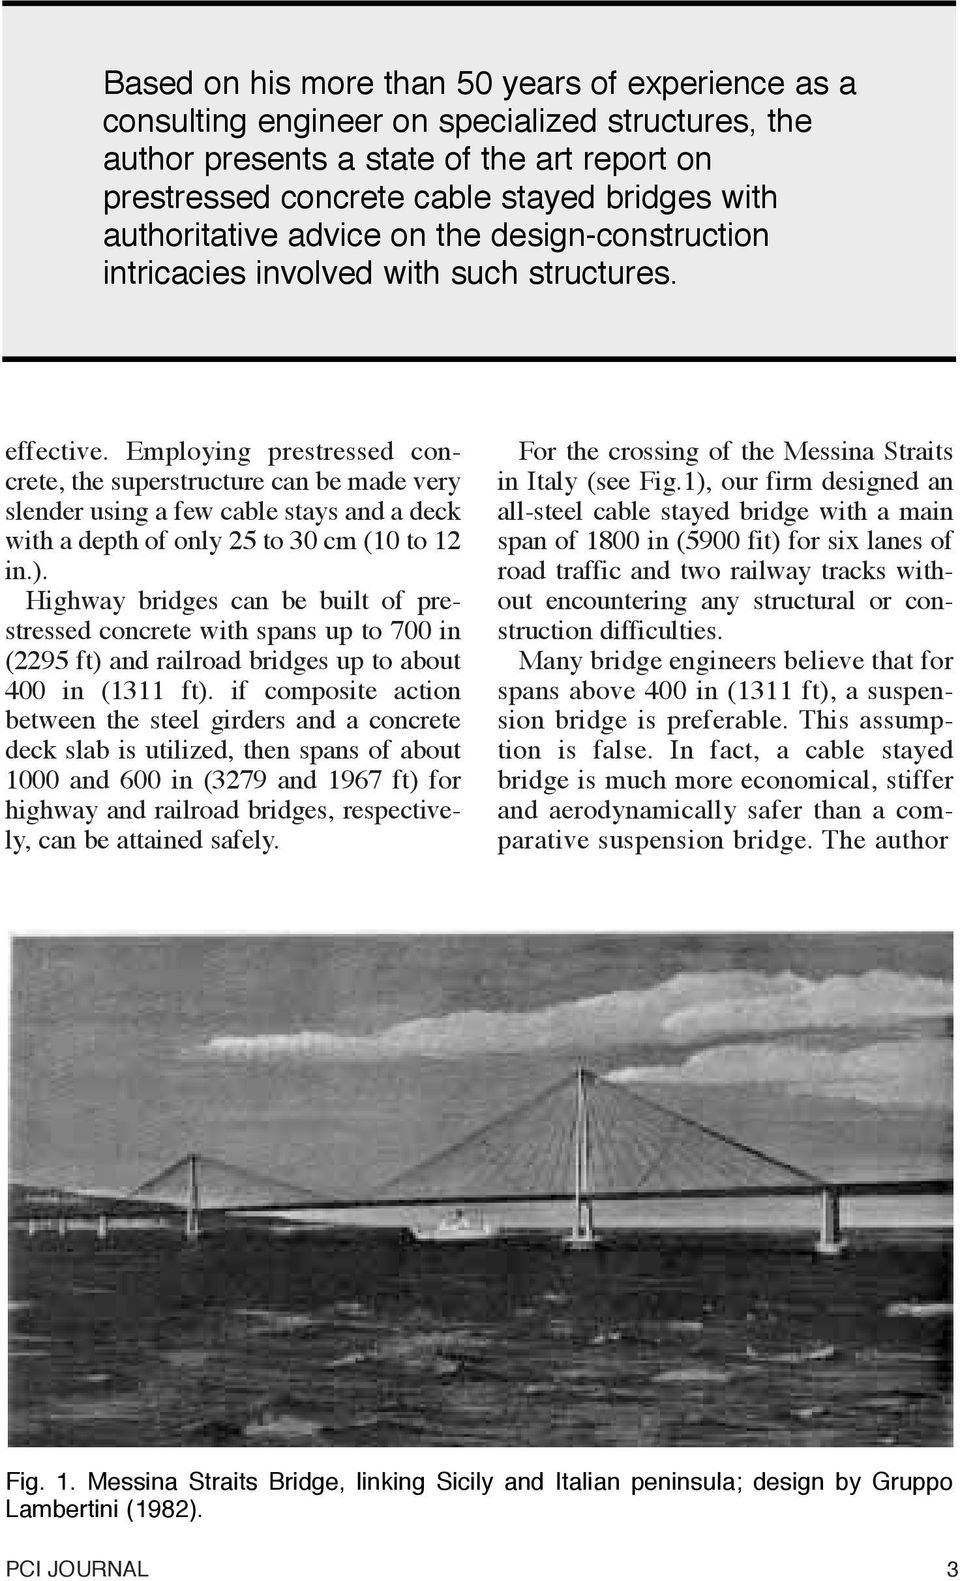 Cable Stayed Bridges  With Prestressed Concrete - PDF